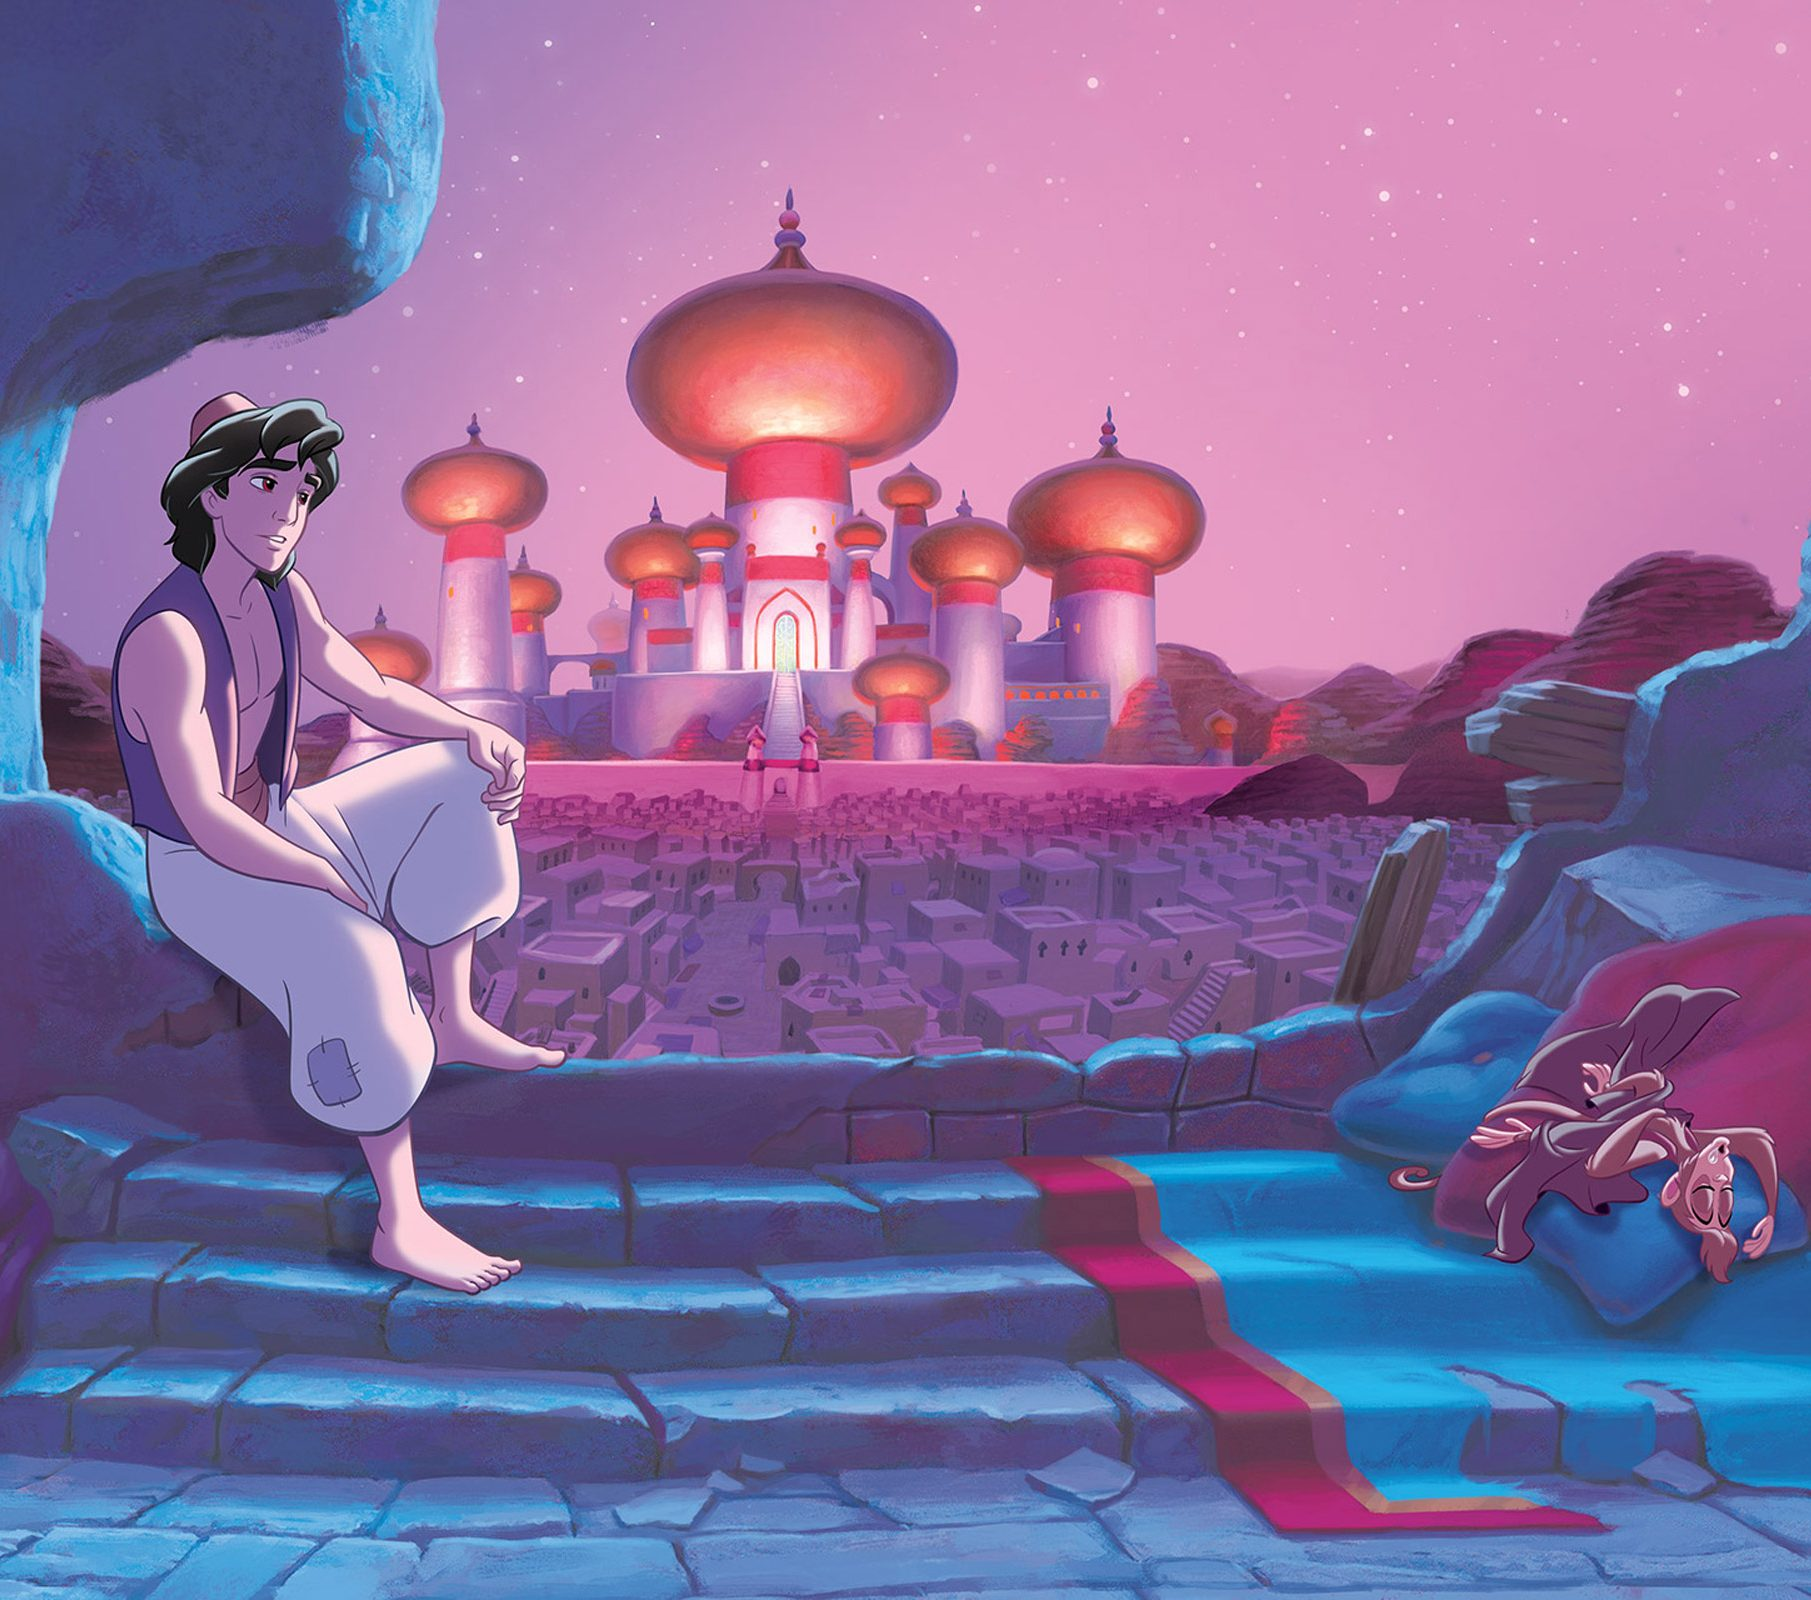 aladdin 1ae307 e1616497324320 20 Things You Never Knew About Disney's Aladdin